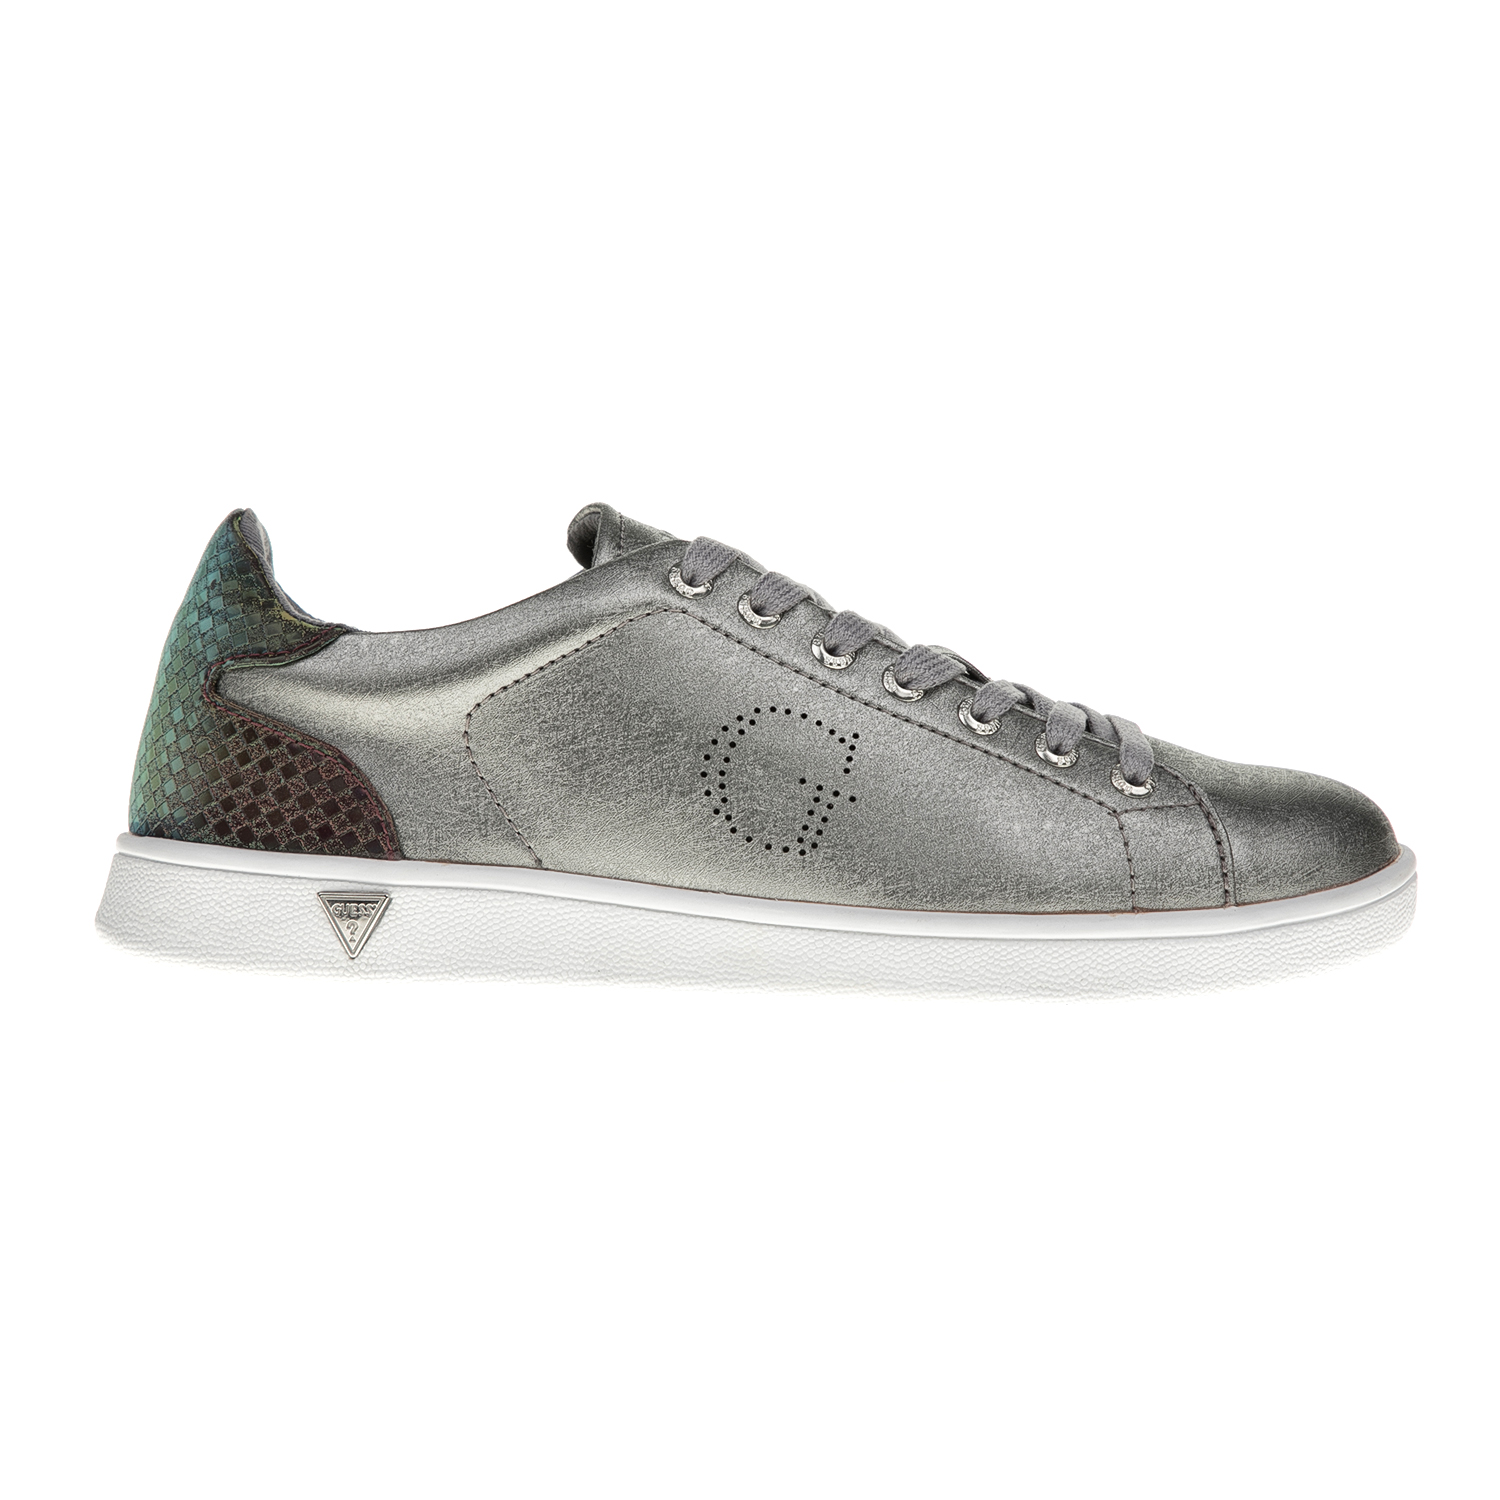 GUESS – Γυναικεία sneakers GUESS SUPER ασημί